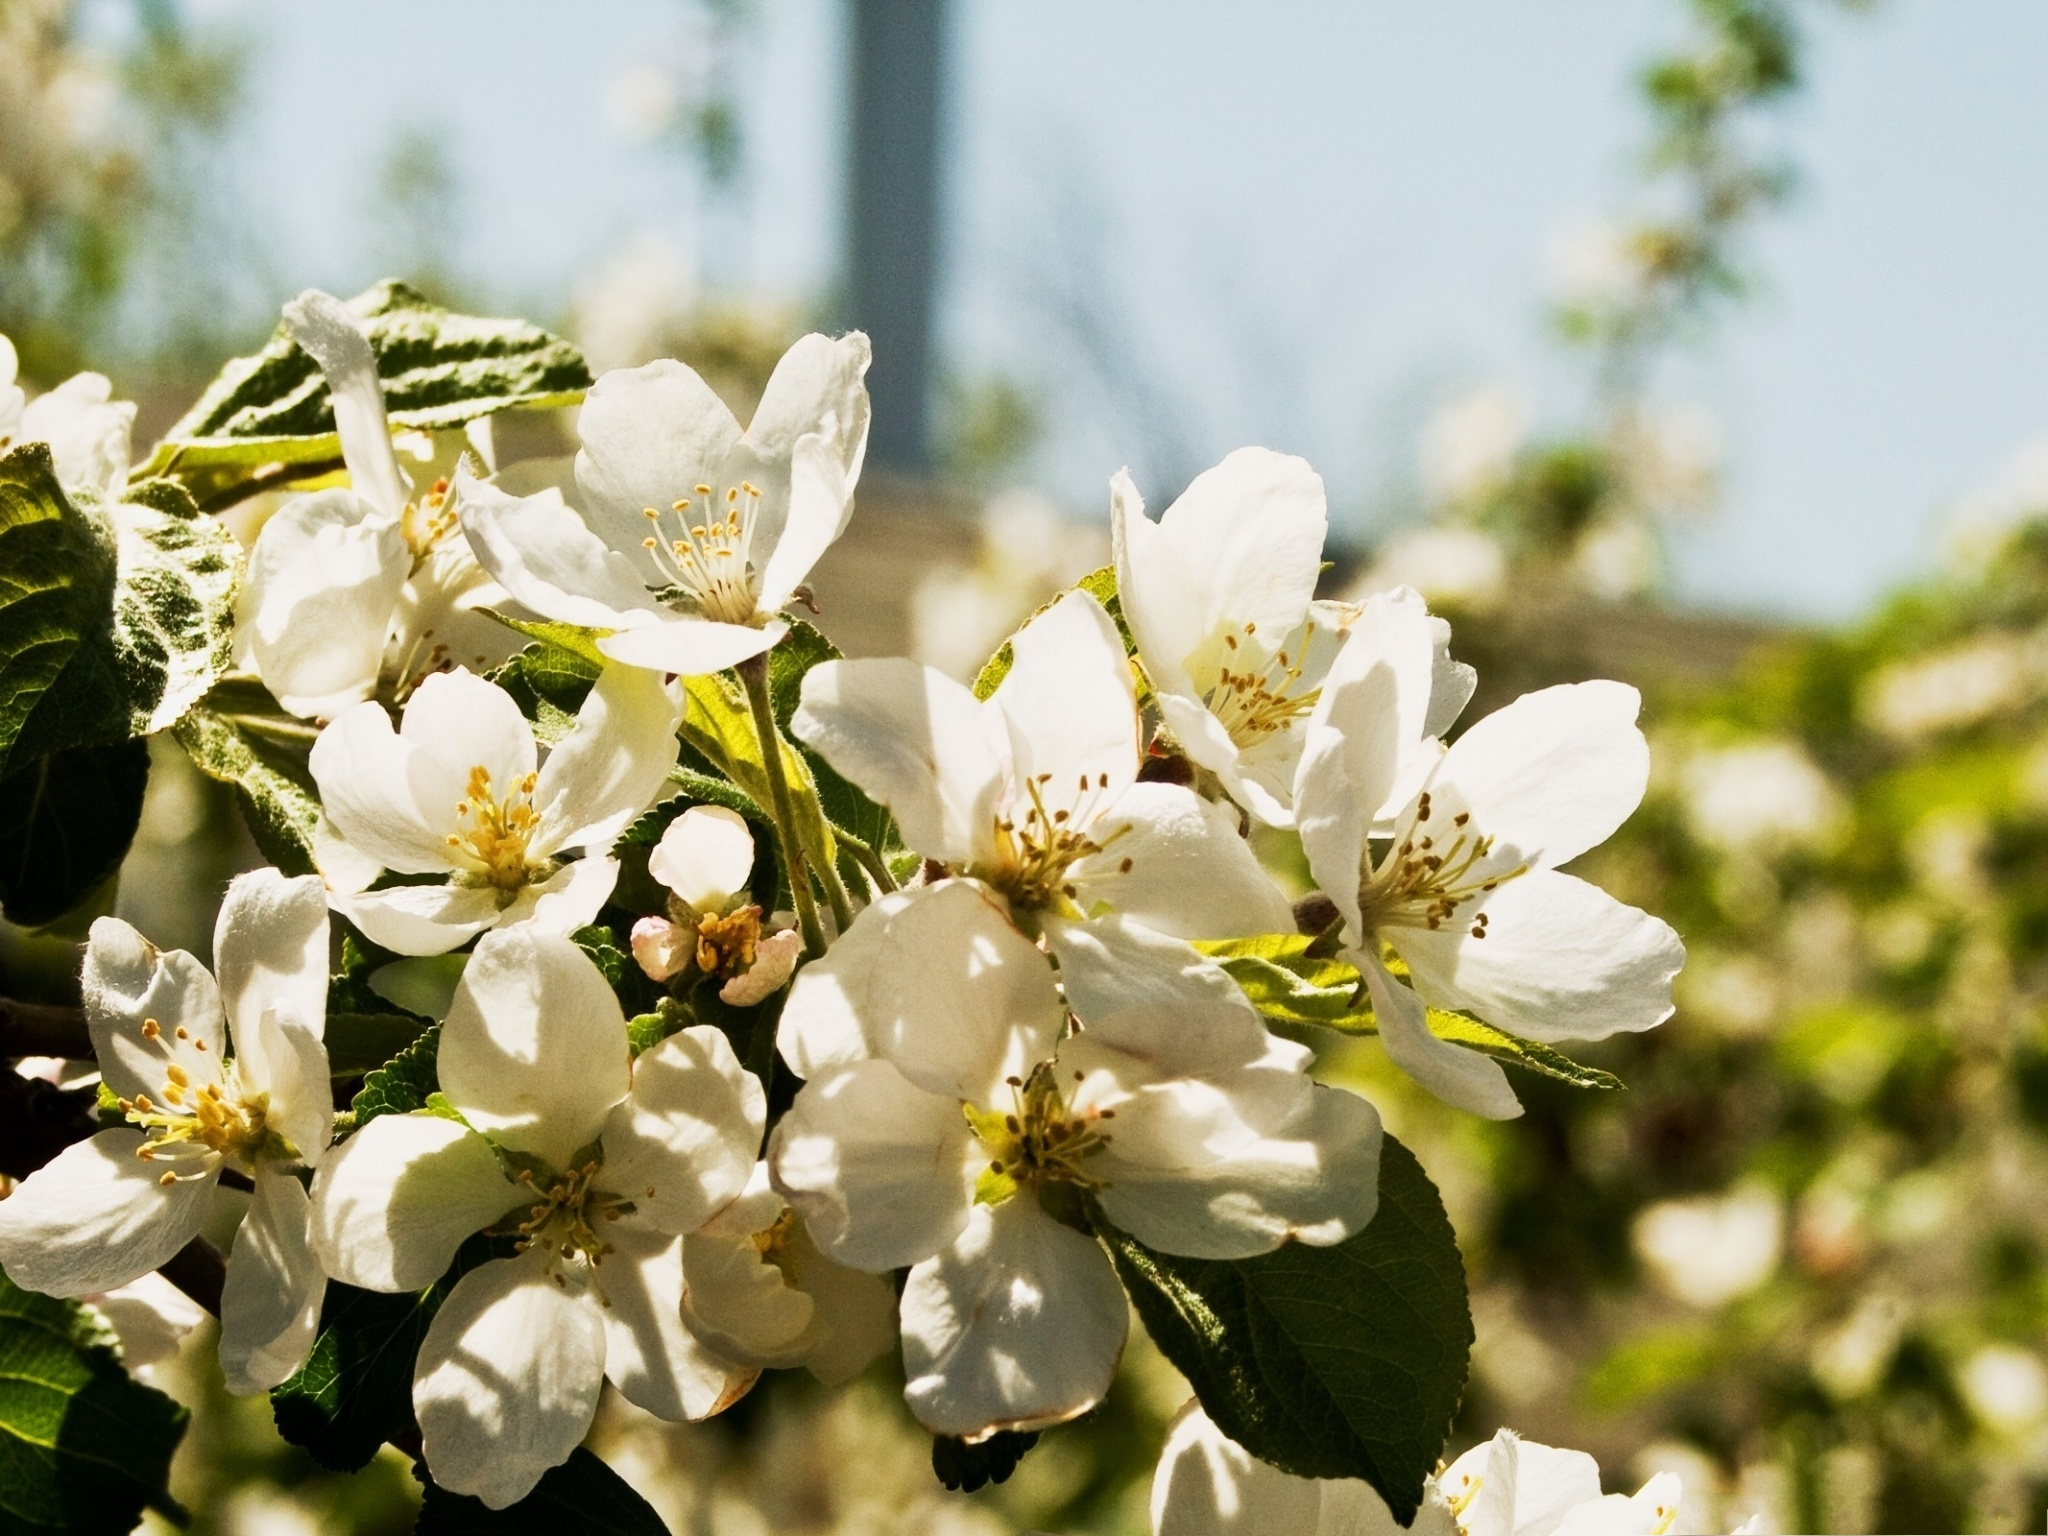 click to free download the wallpaper--Pear Flowers Photo, White Blooming Flowers with Strong Sunshine, Amazing Scene 2048X1536 free wallpaper download